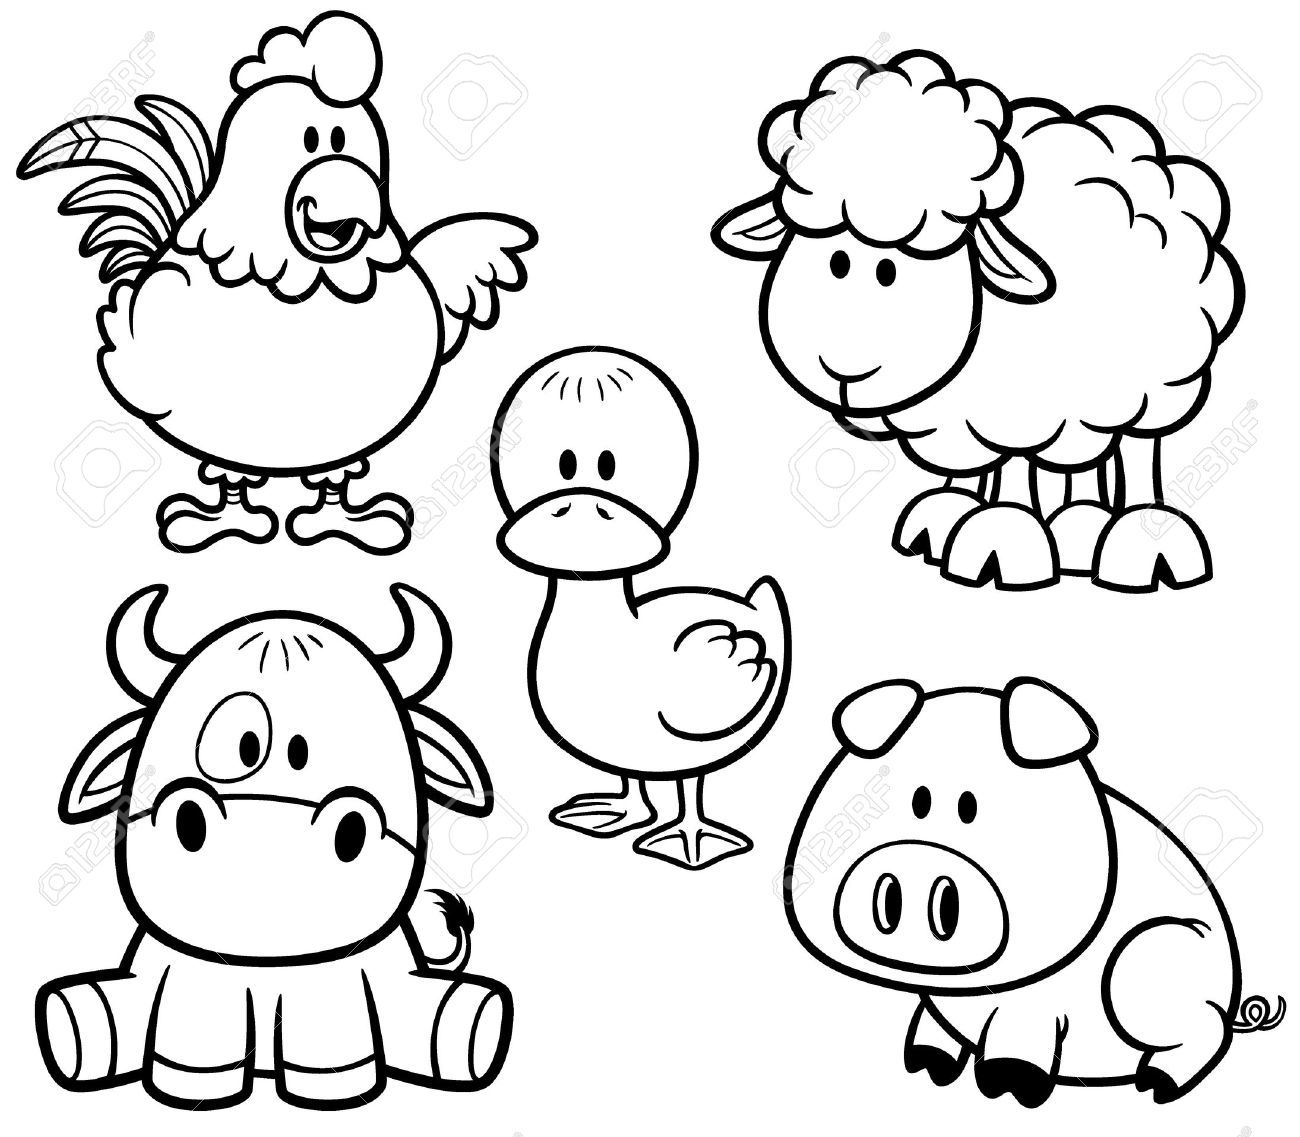 Stock Photo Farm animal coloring pages, Animal coloring